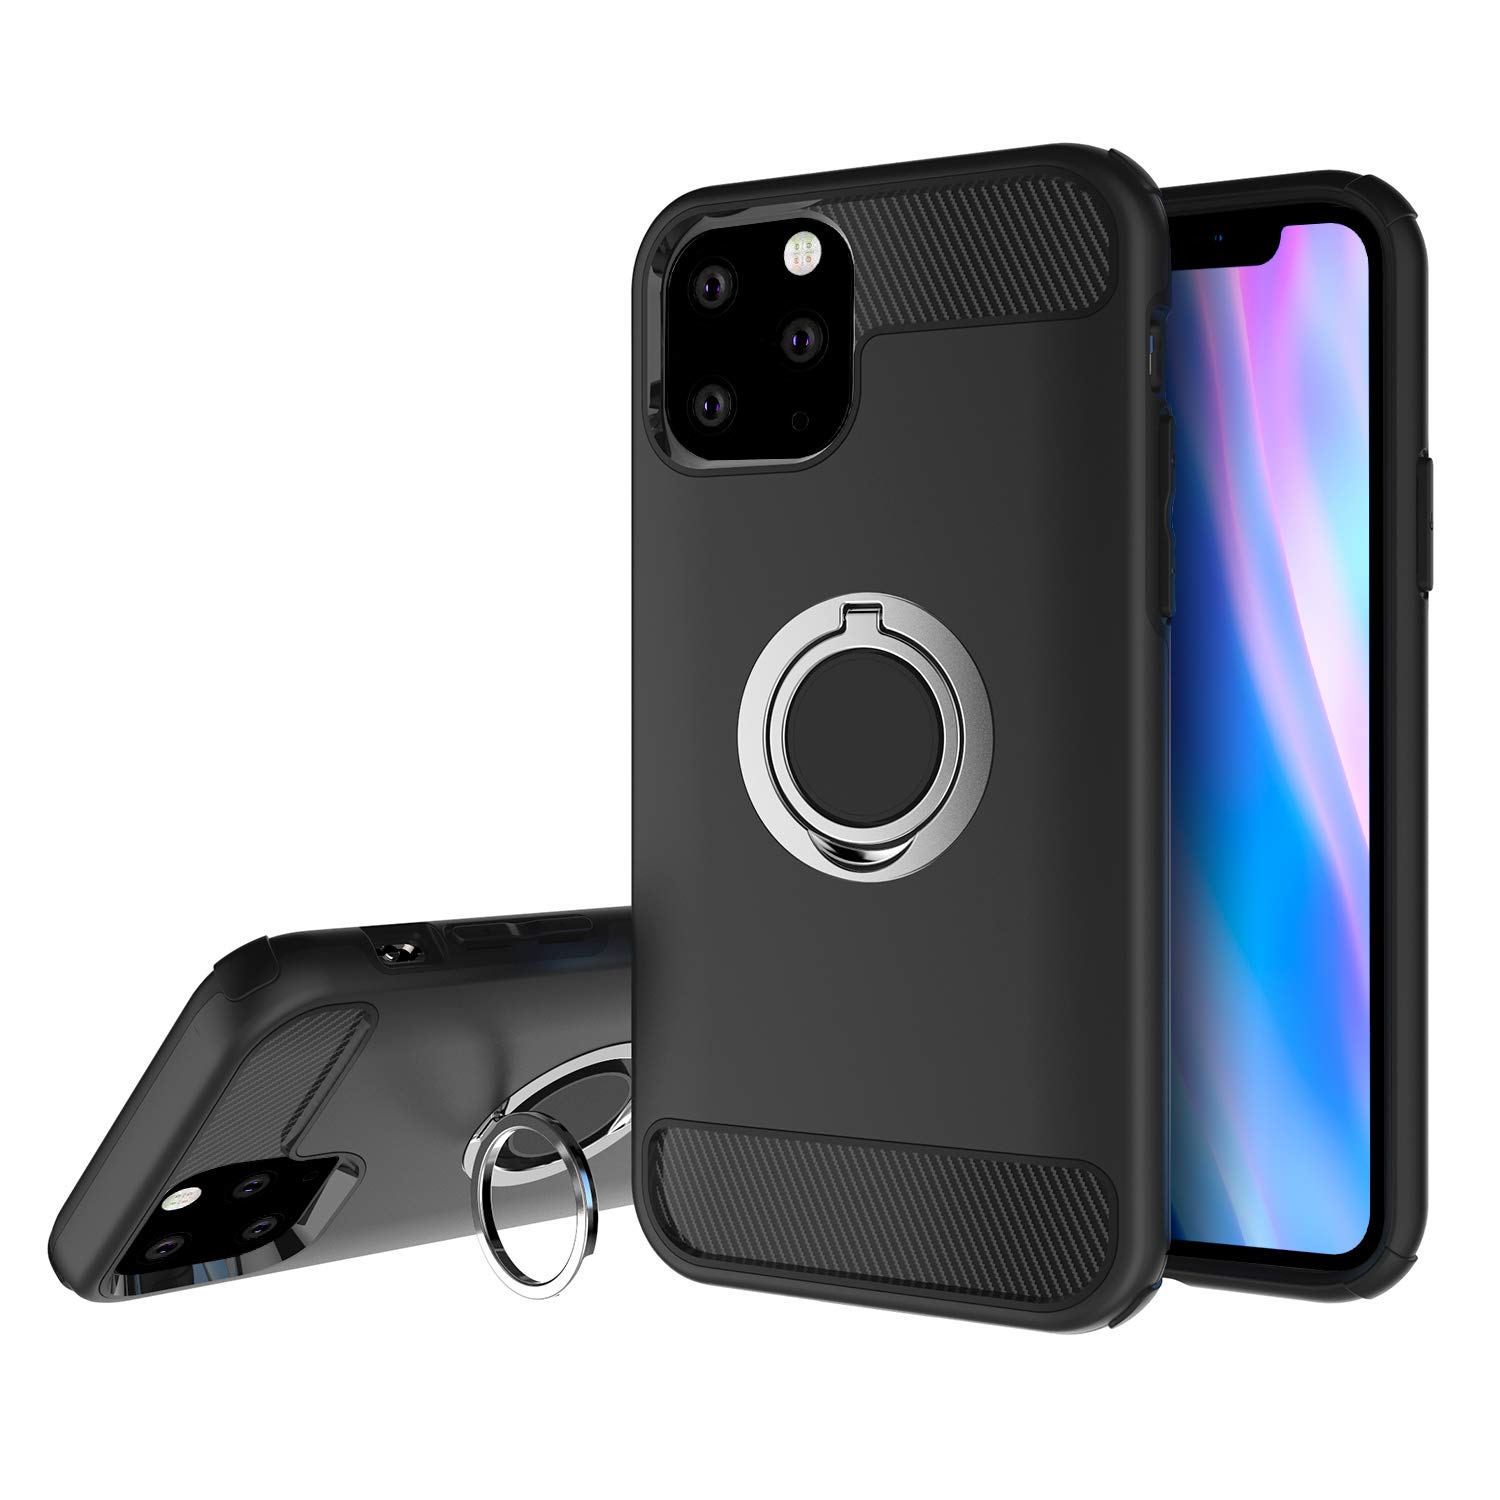 Olixar for iPhone 11 Pro Case with Loop - X Ring - Finger Loop - Rotating Kickstand and Media Viewing Stand - Finger Loop - Black